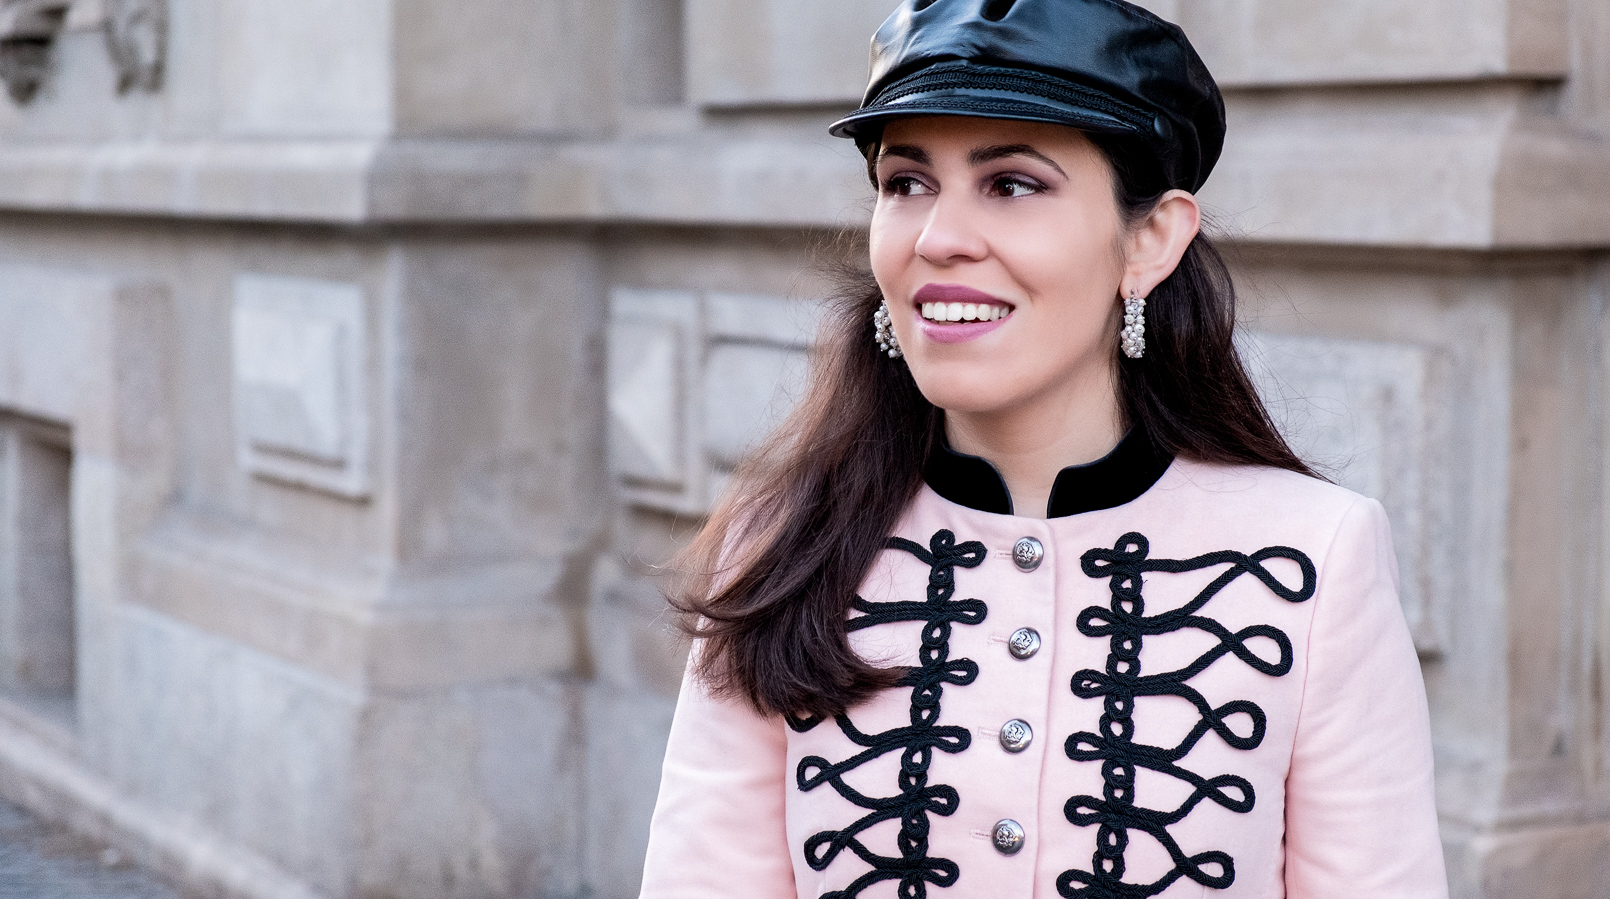 Le Fashionaire Is Internet the new witch hunt? pink velvet black embroidered military zara jacket pearls white hoops earrings pedra dura black military hat fake leather zara 7527F EN